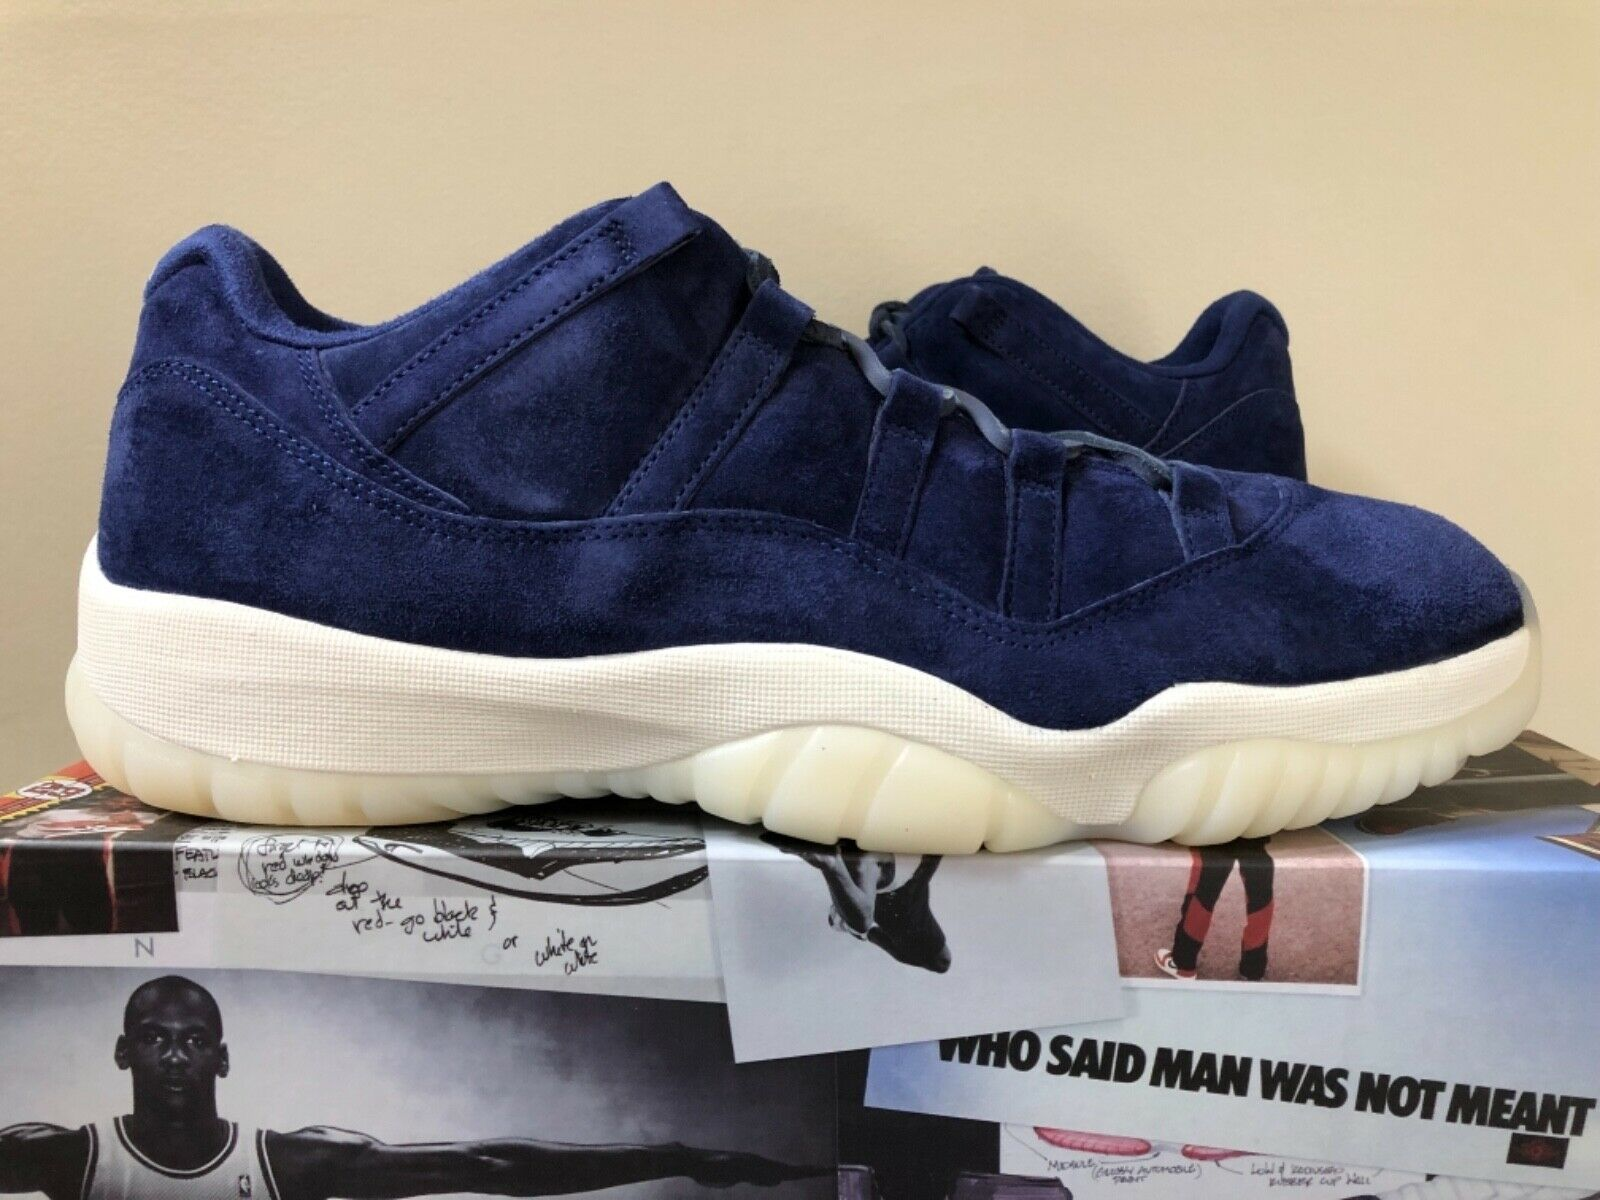 Air Jordan Retro 11 XI Low JETER RE2PECT Navy 8-14 AV2187-441 100% Authentic